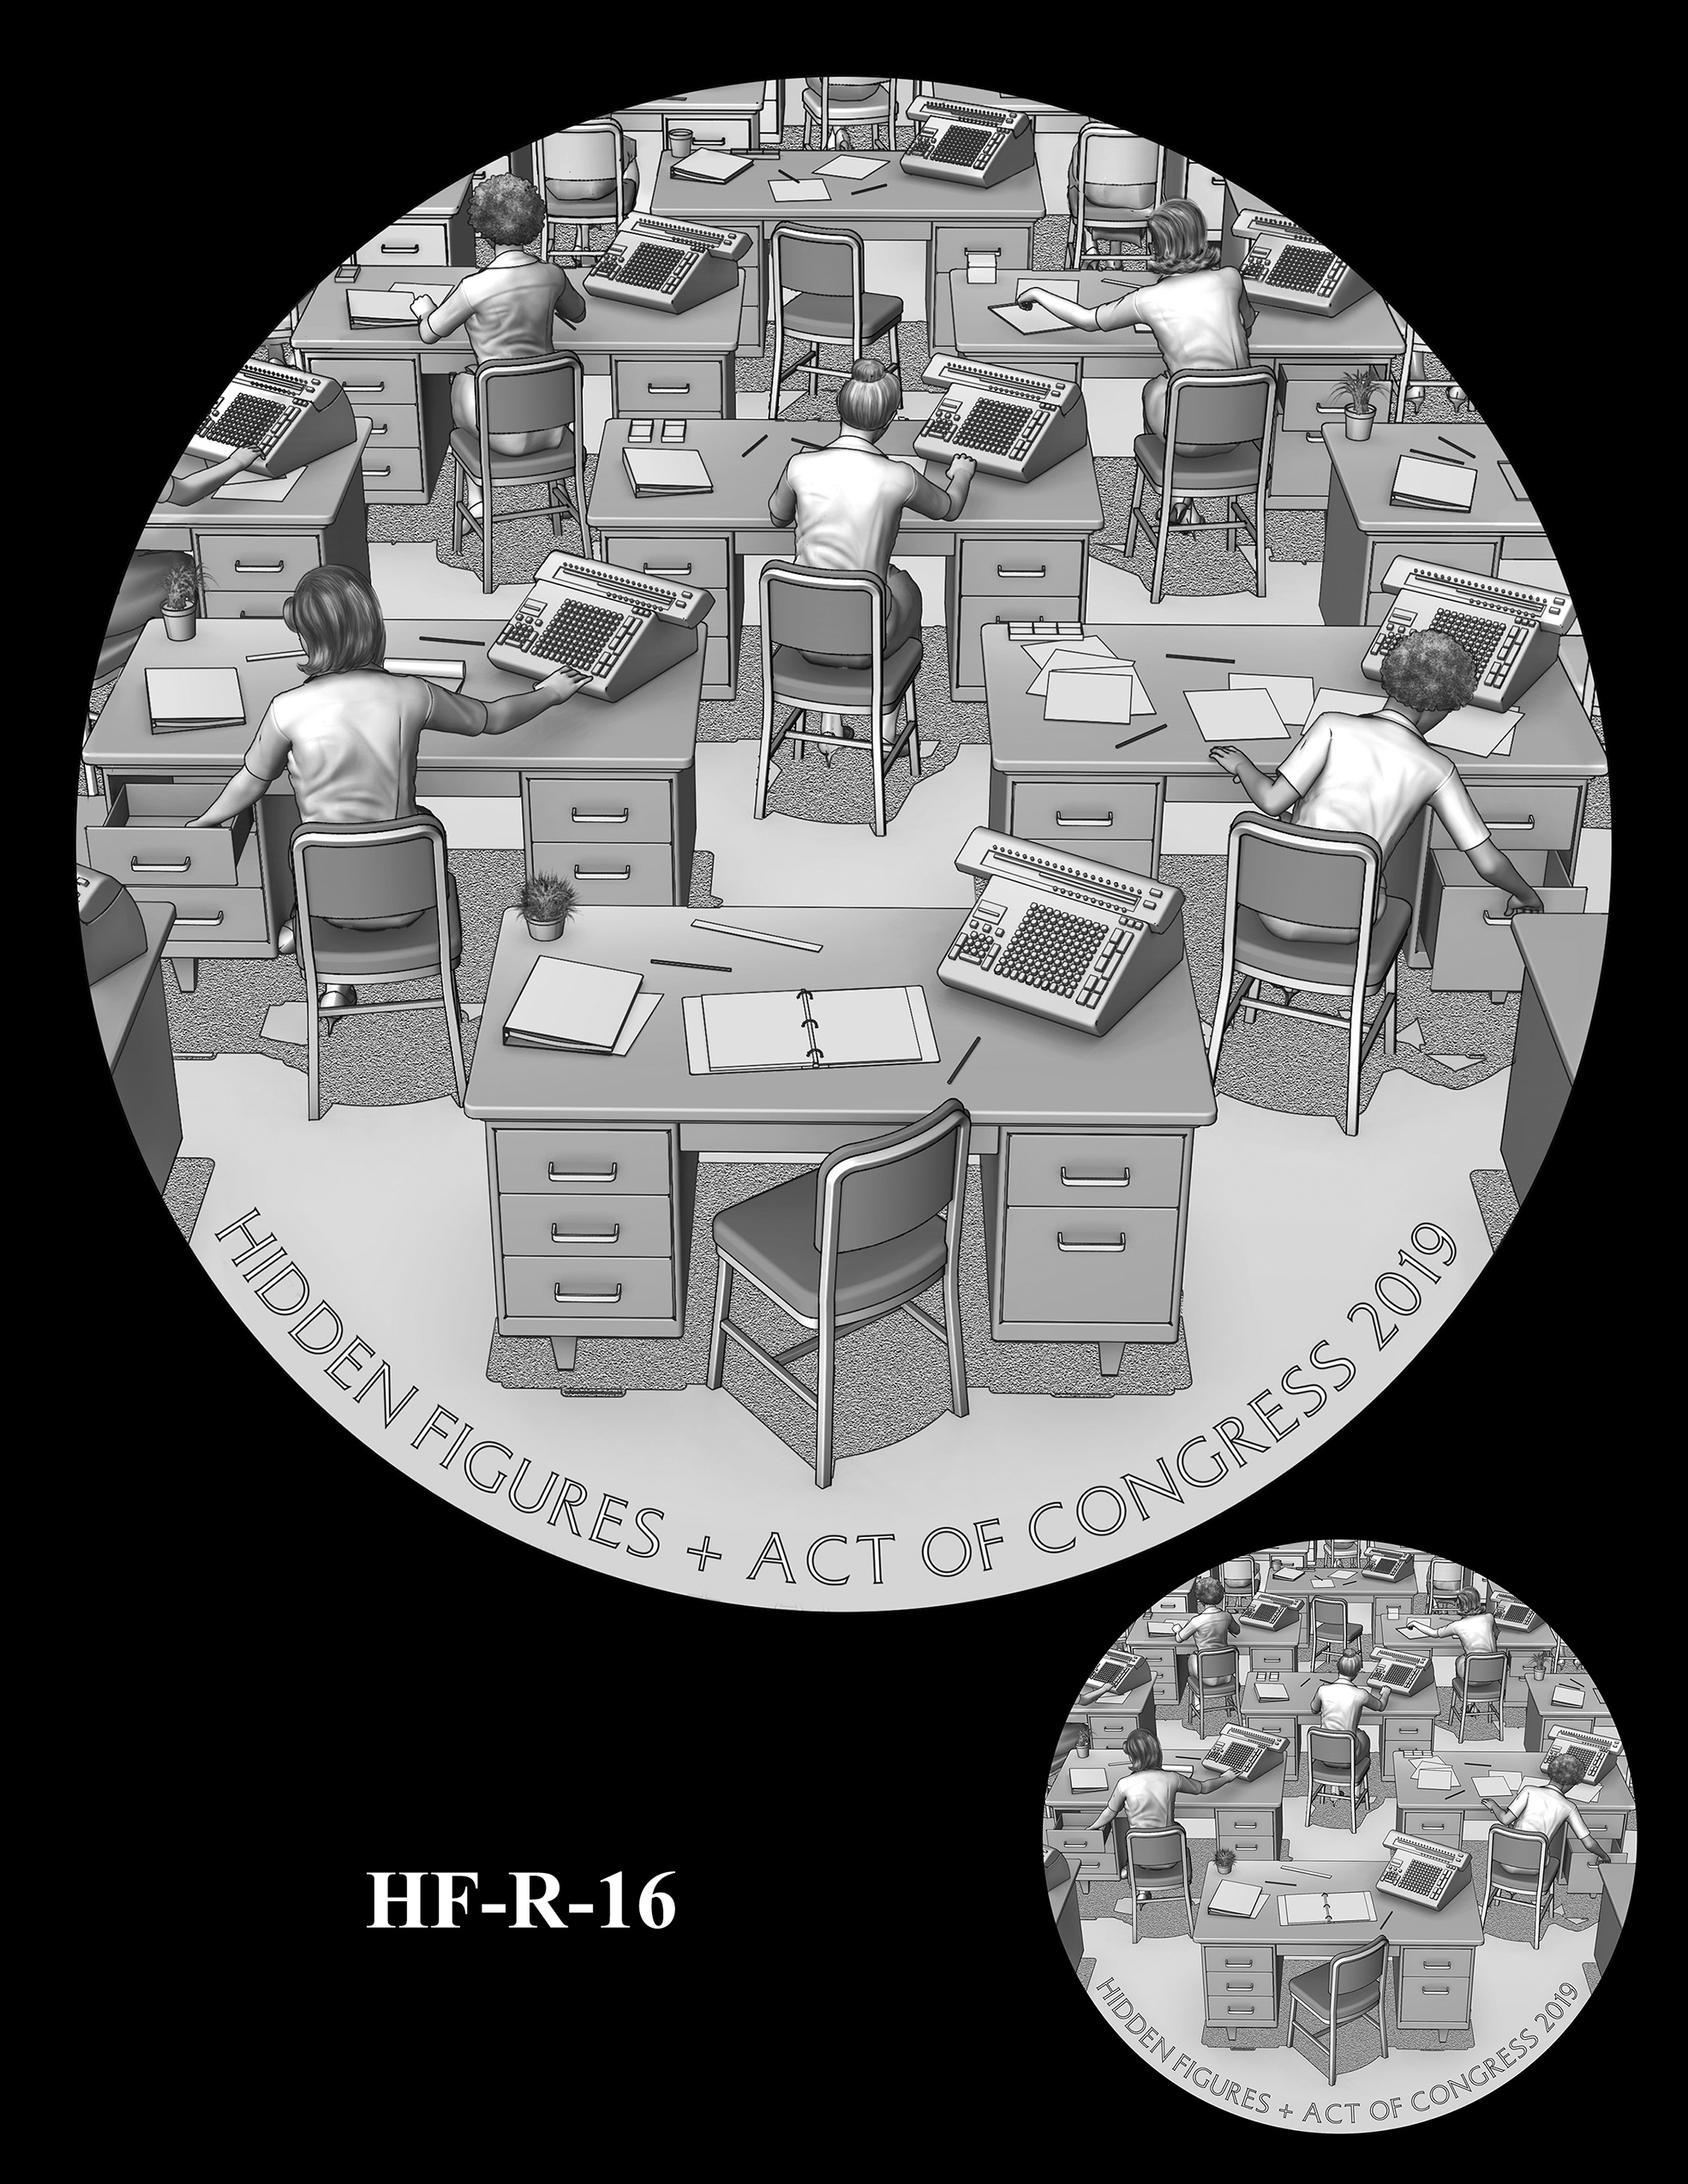 HF-R-16 -- Hidden Figures Group Congressional Gold Medal